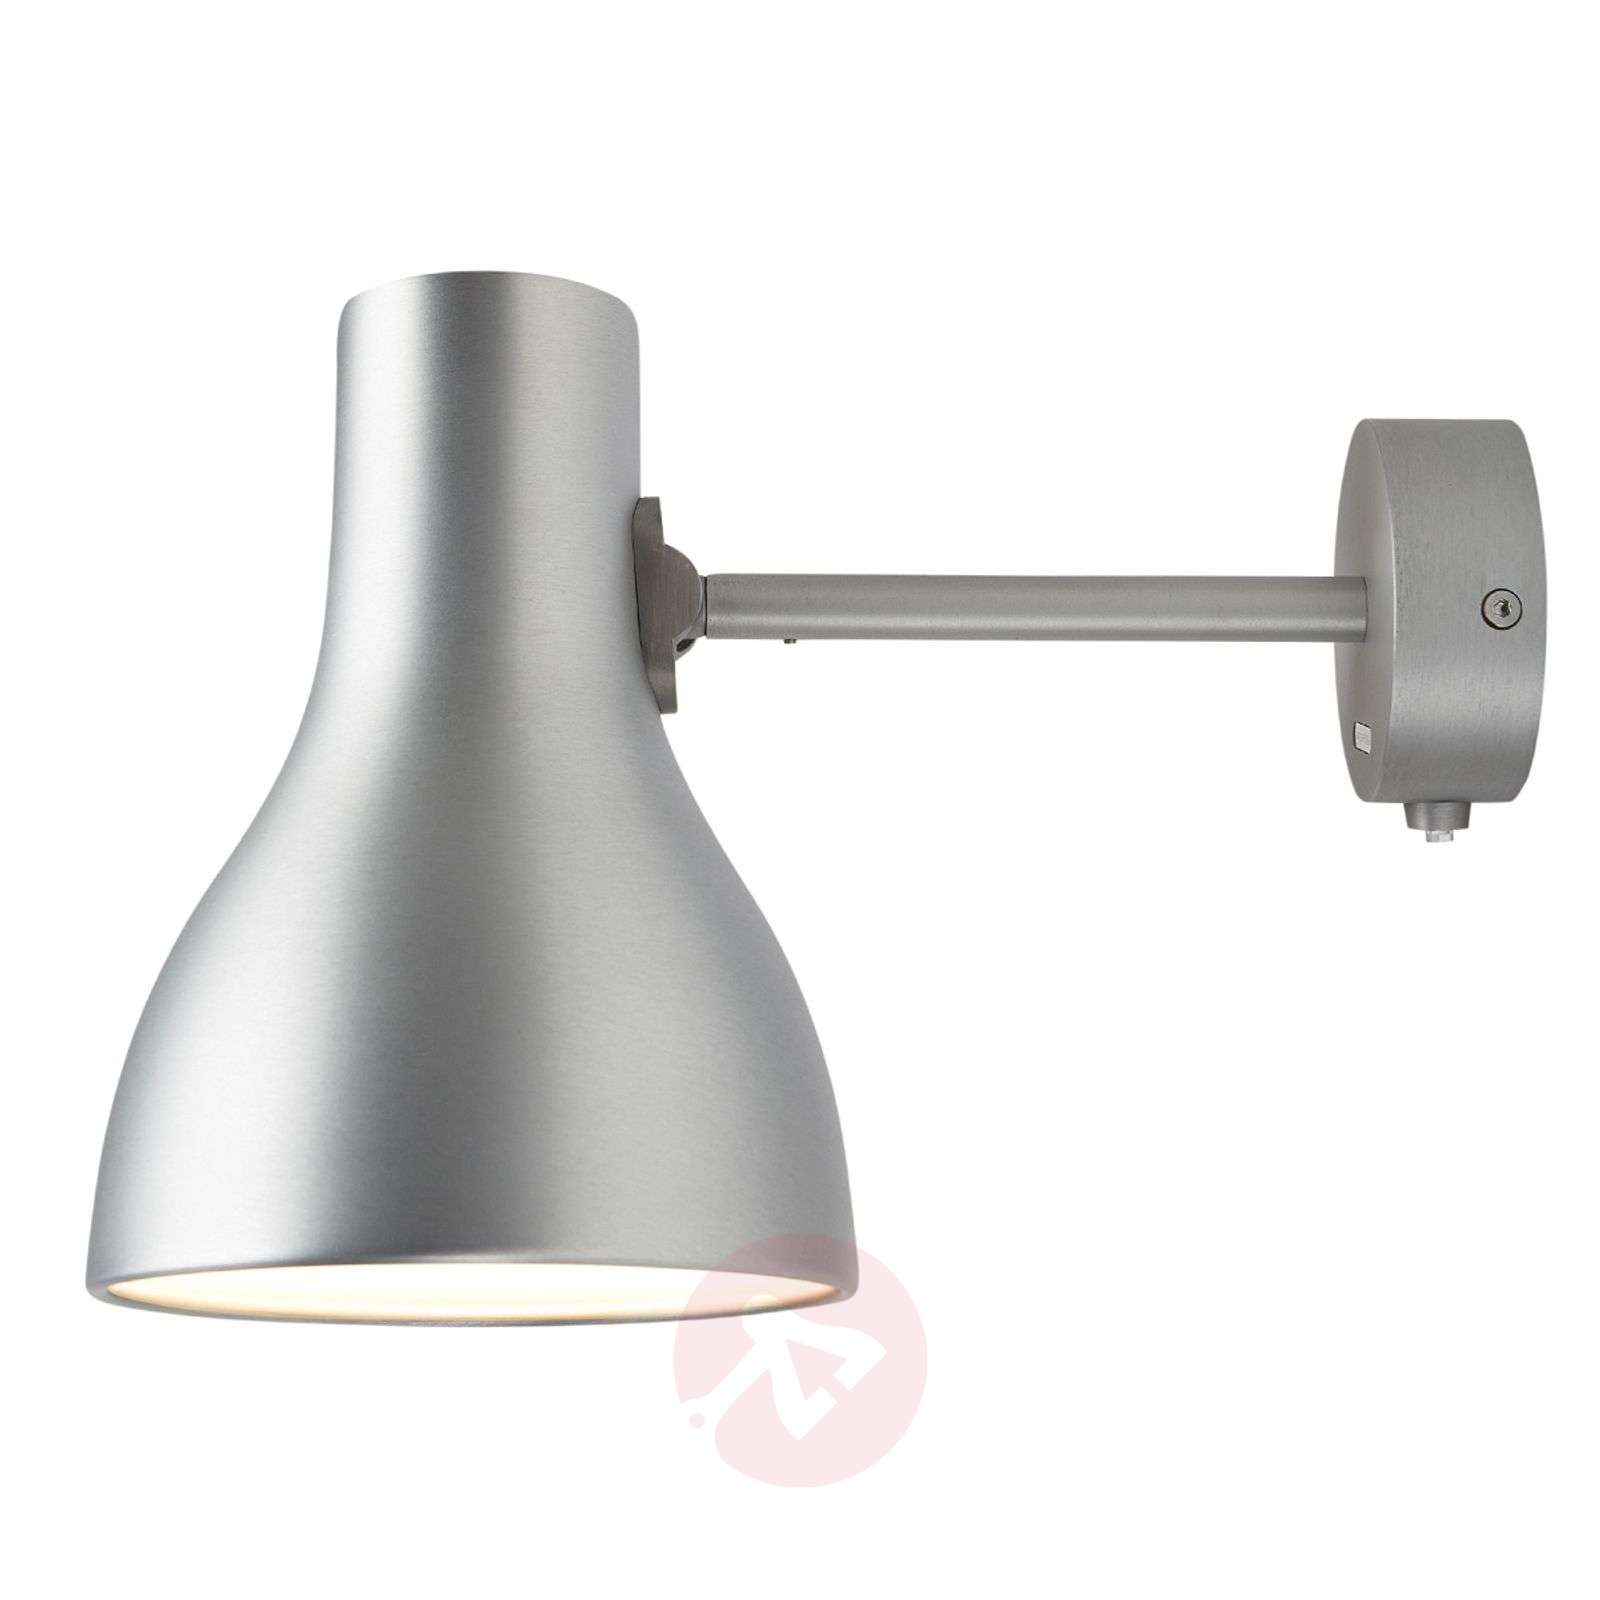 Anglepoise® Type 75 wall light-1073098X-01